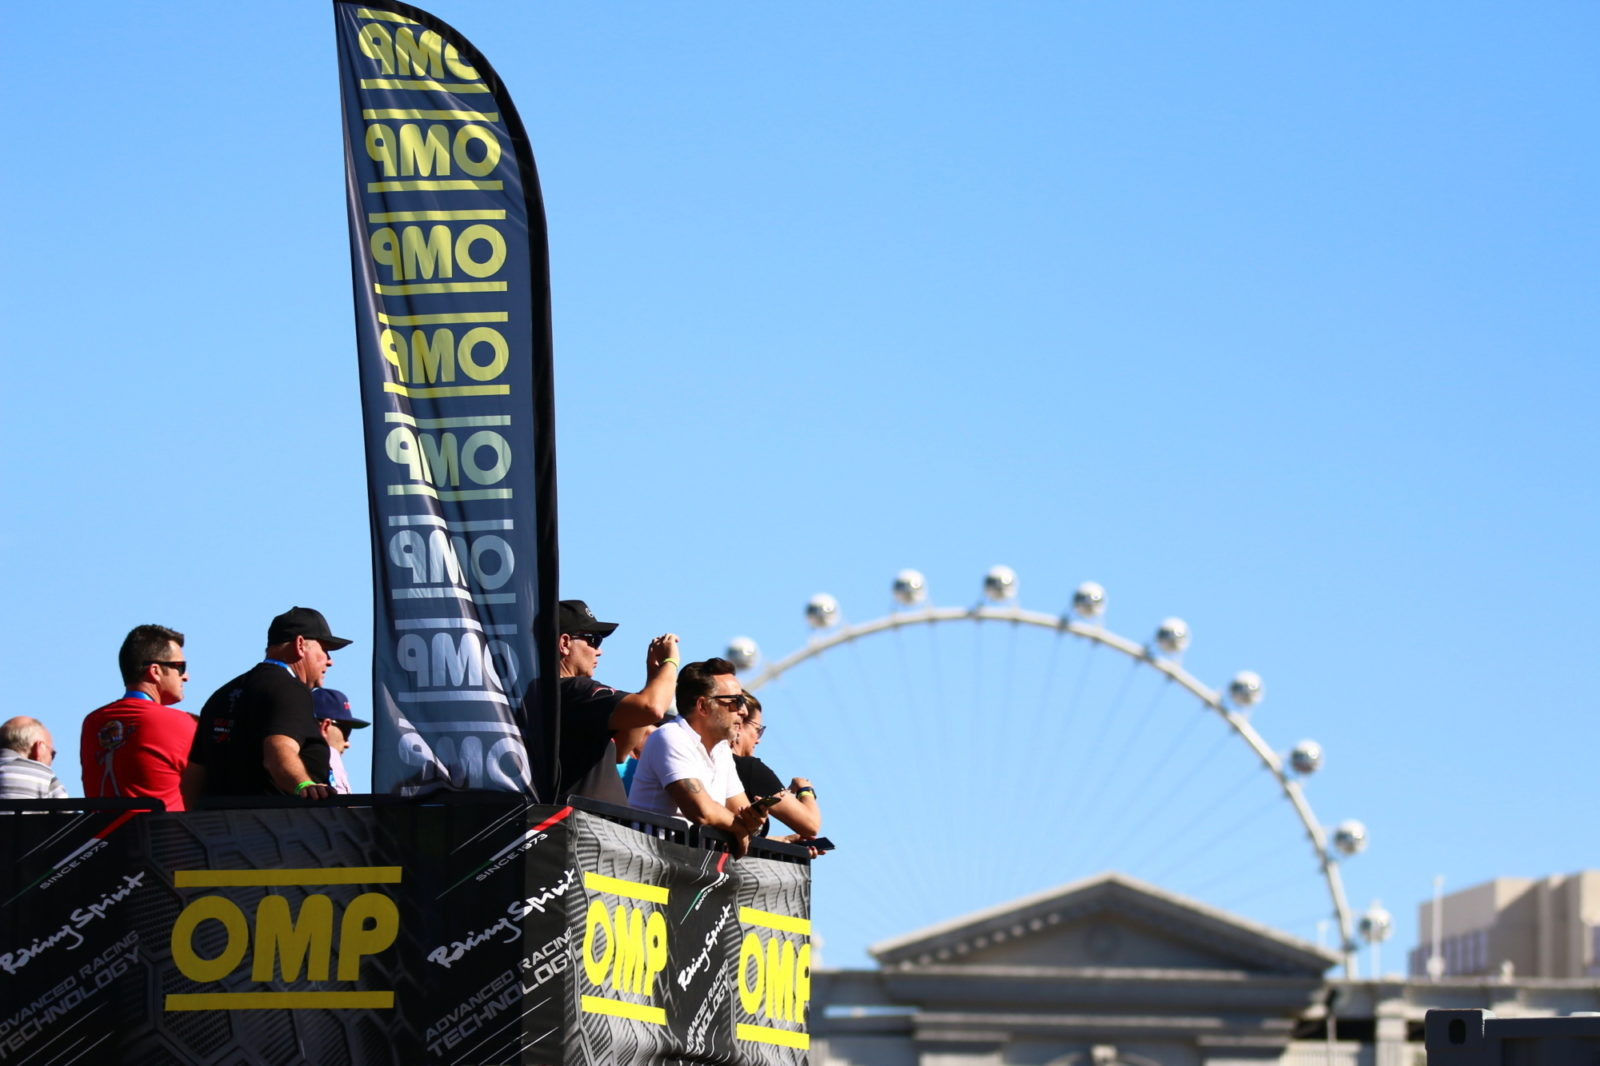 OMP lookout tower and branding at the 2018 ROK The Rio event